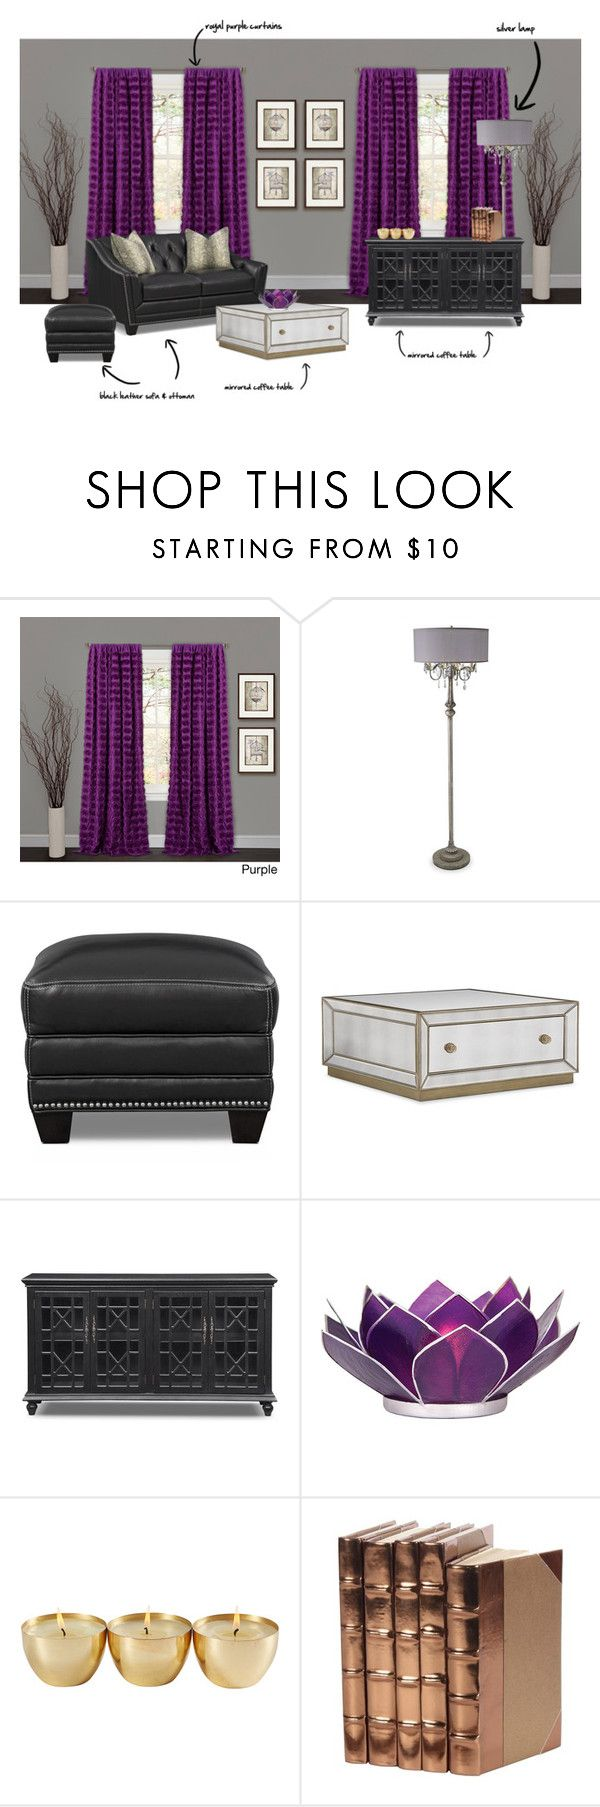 Gothic home furniture together with four hands furniture sale besides - Decorating Around Black Leather By Valuecityfurn On Polyvore Featuring Interior Interiors Interior Design